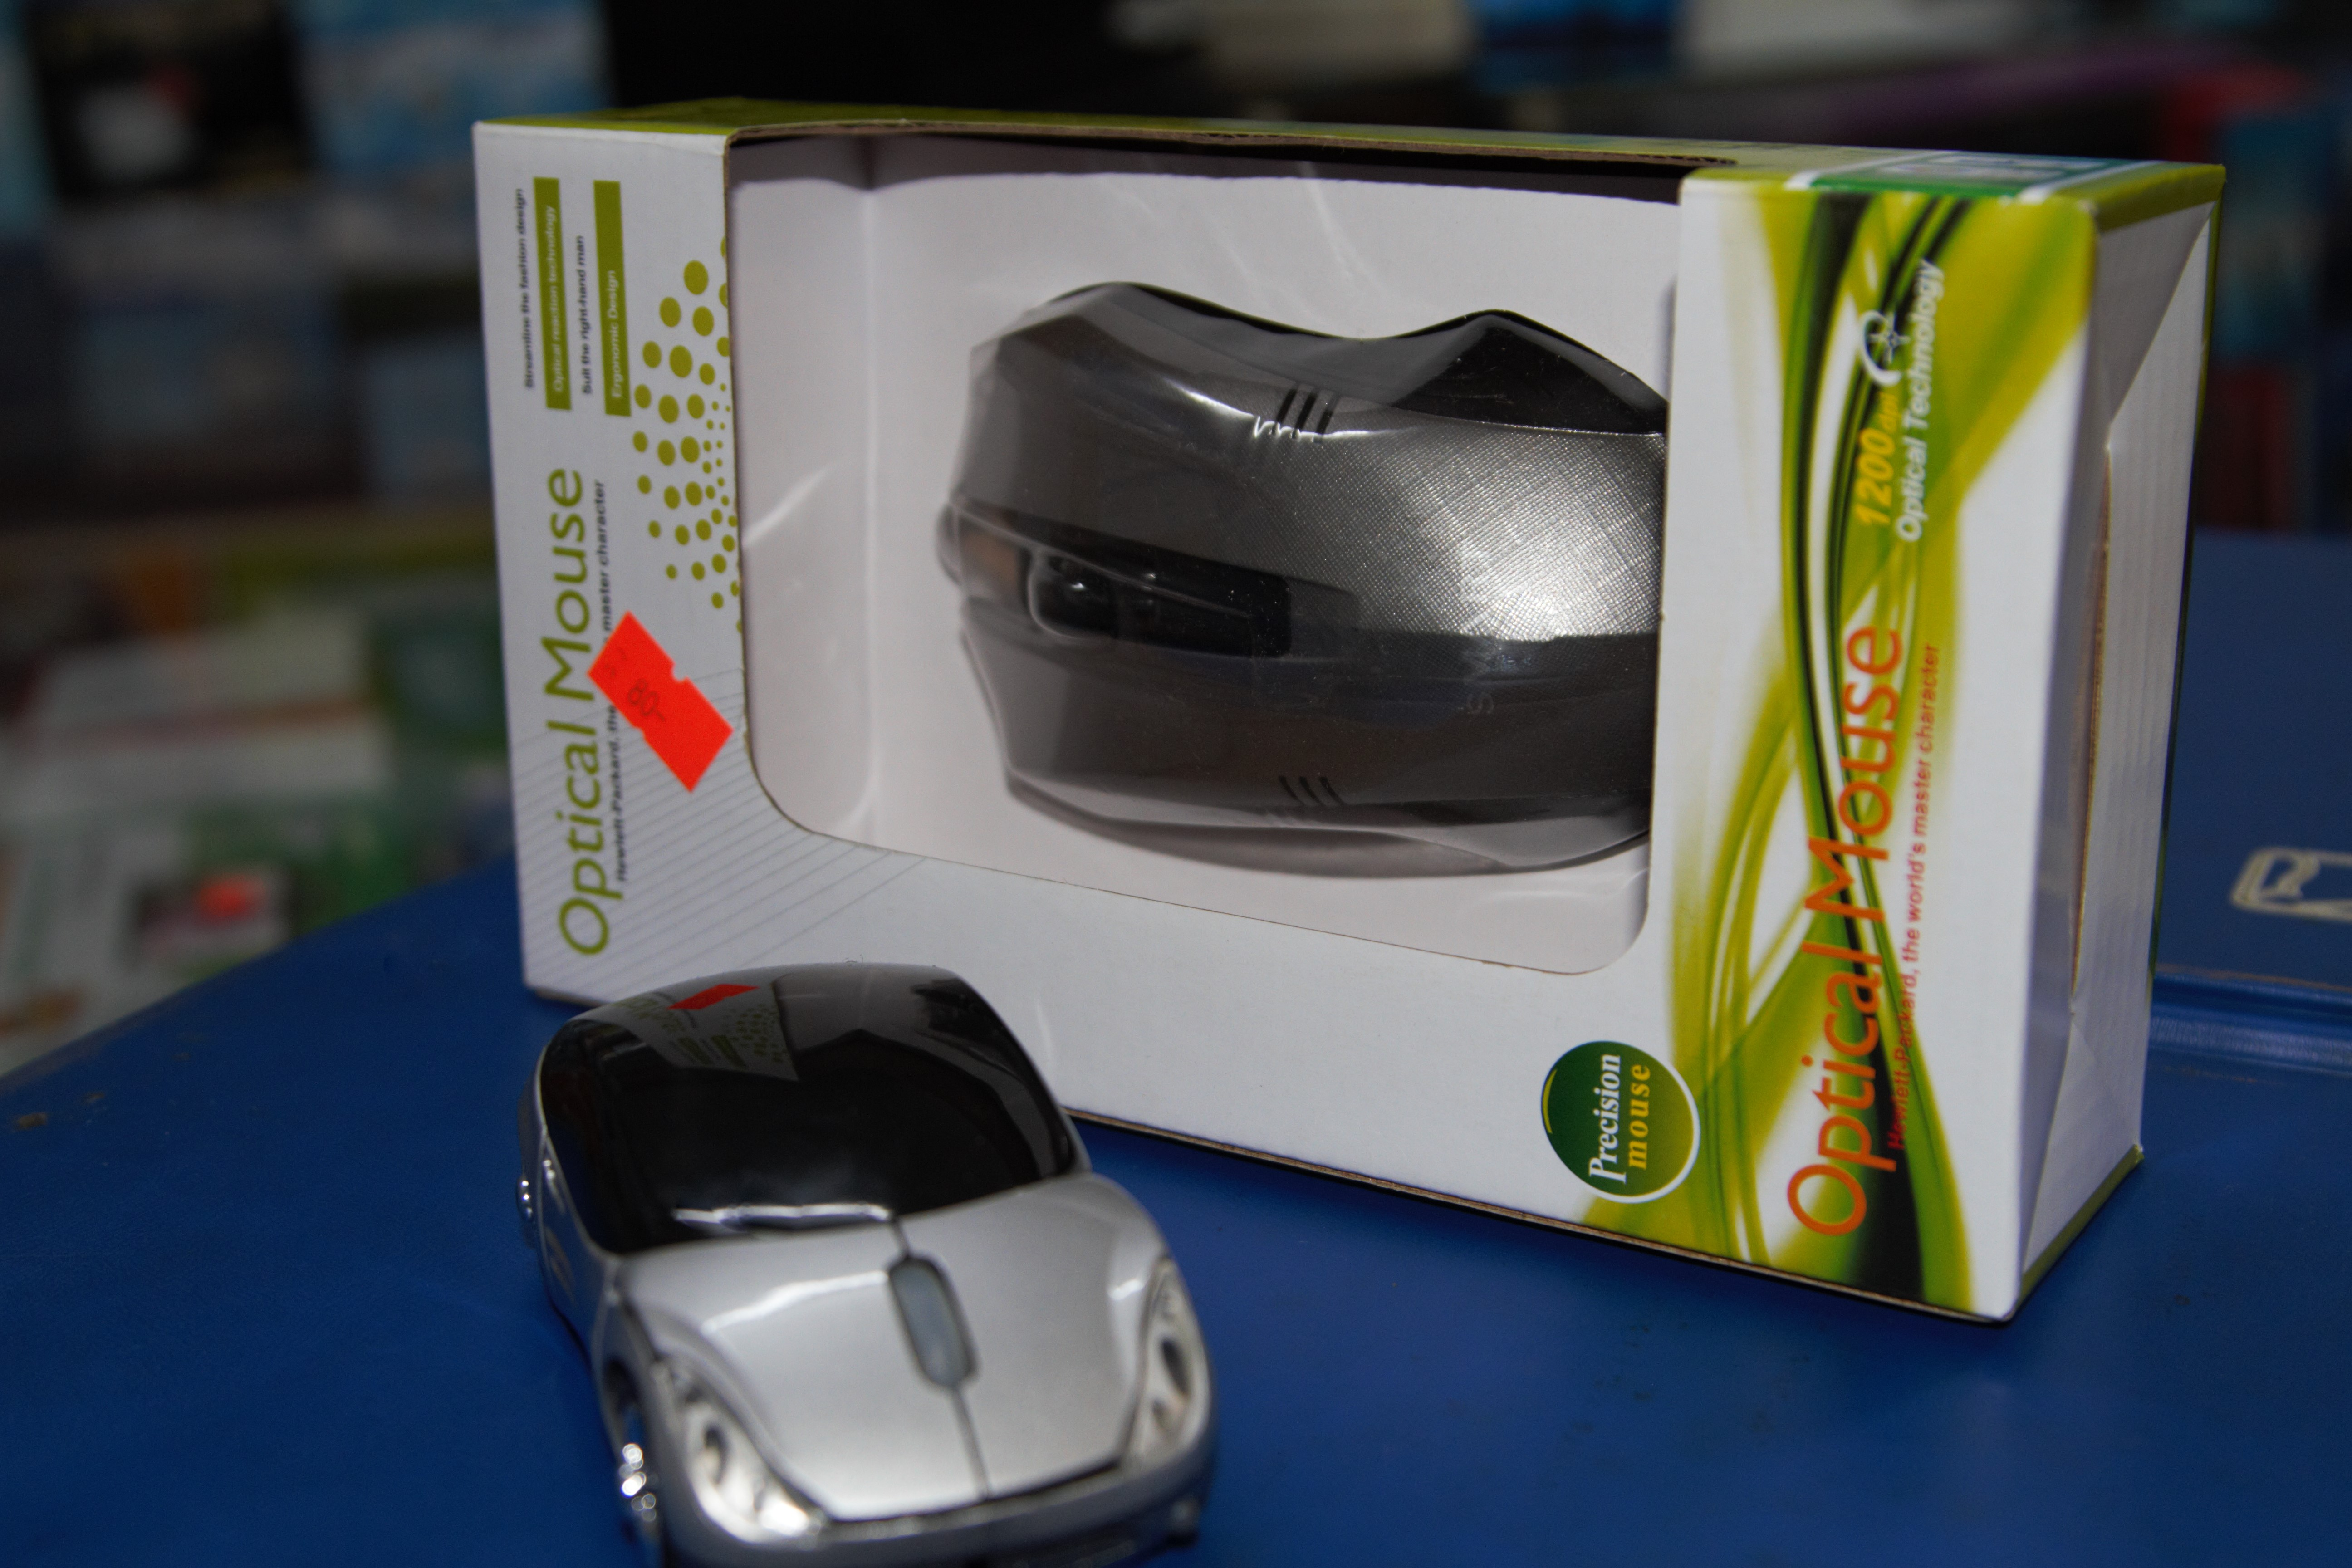 Montana Family Market_House of Electronics_USB connected car shaped mouse